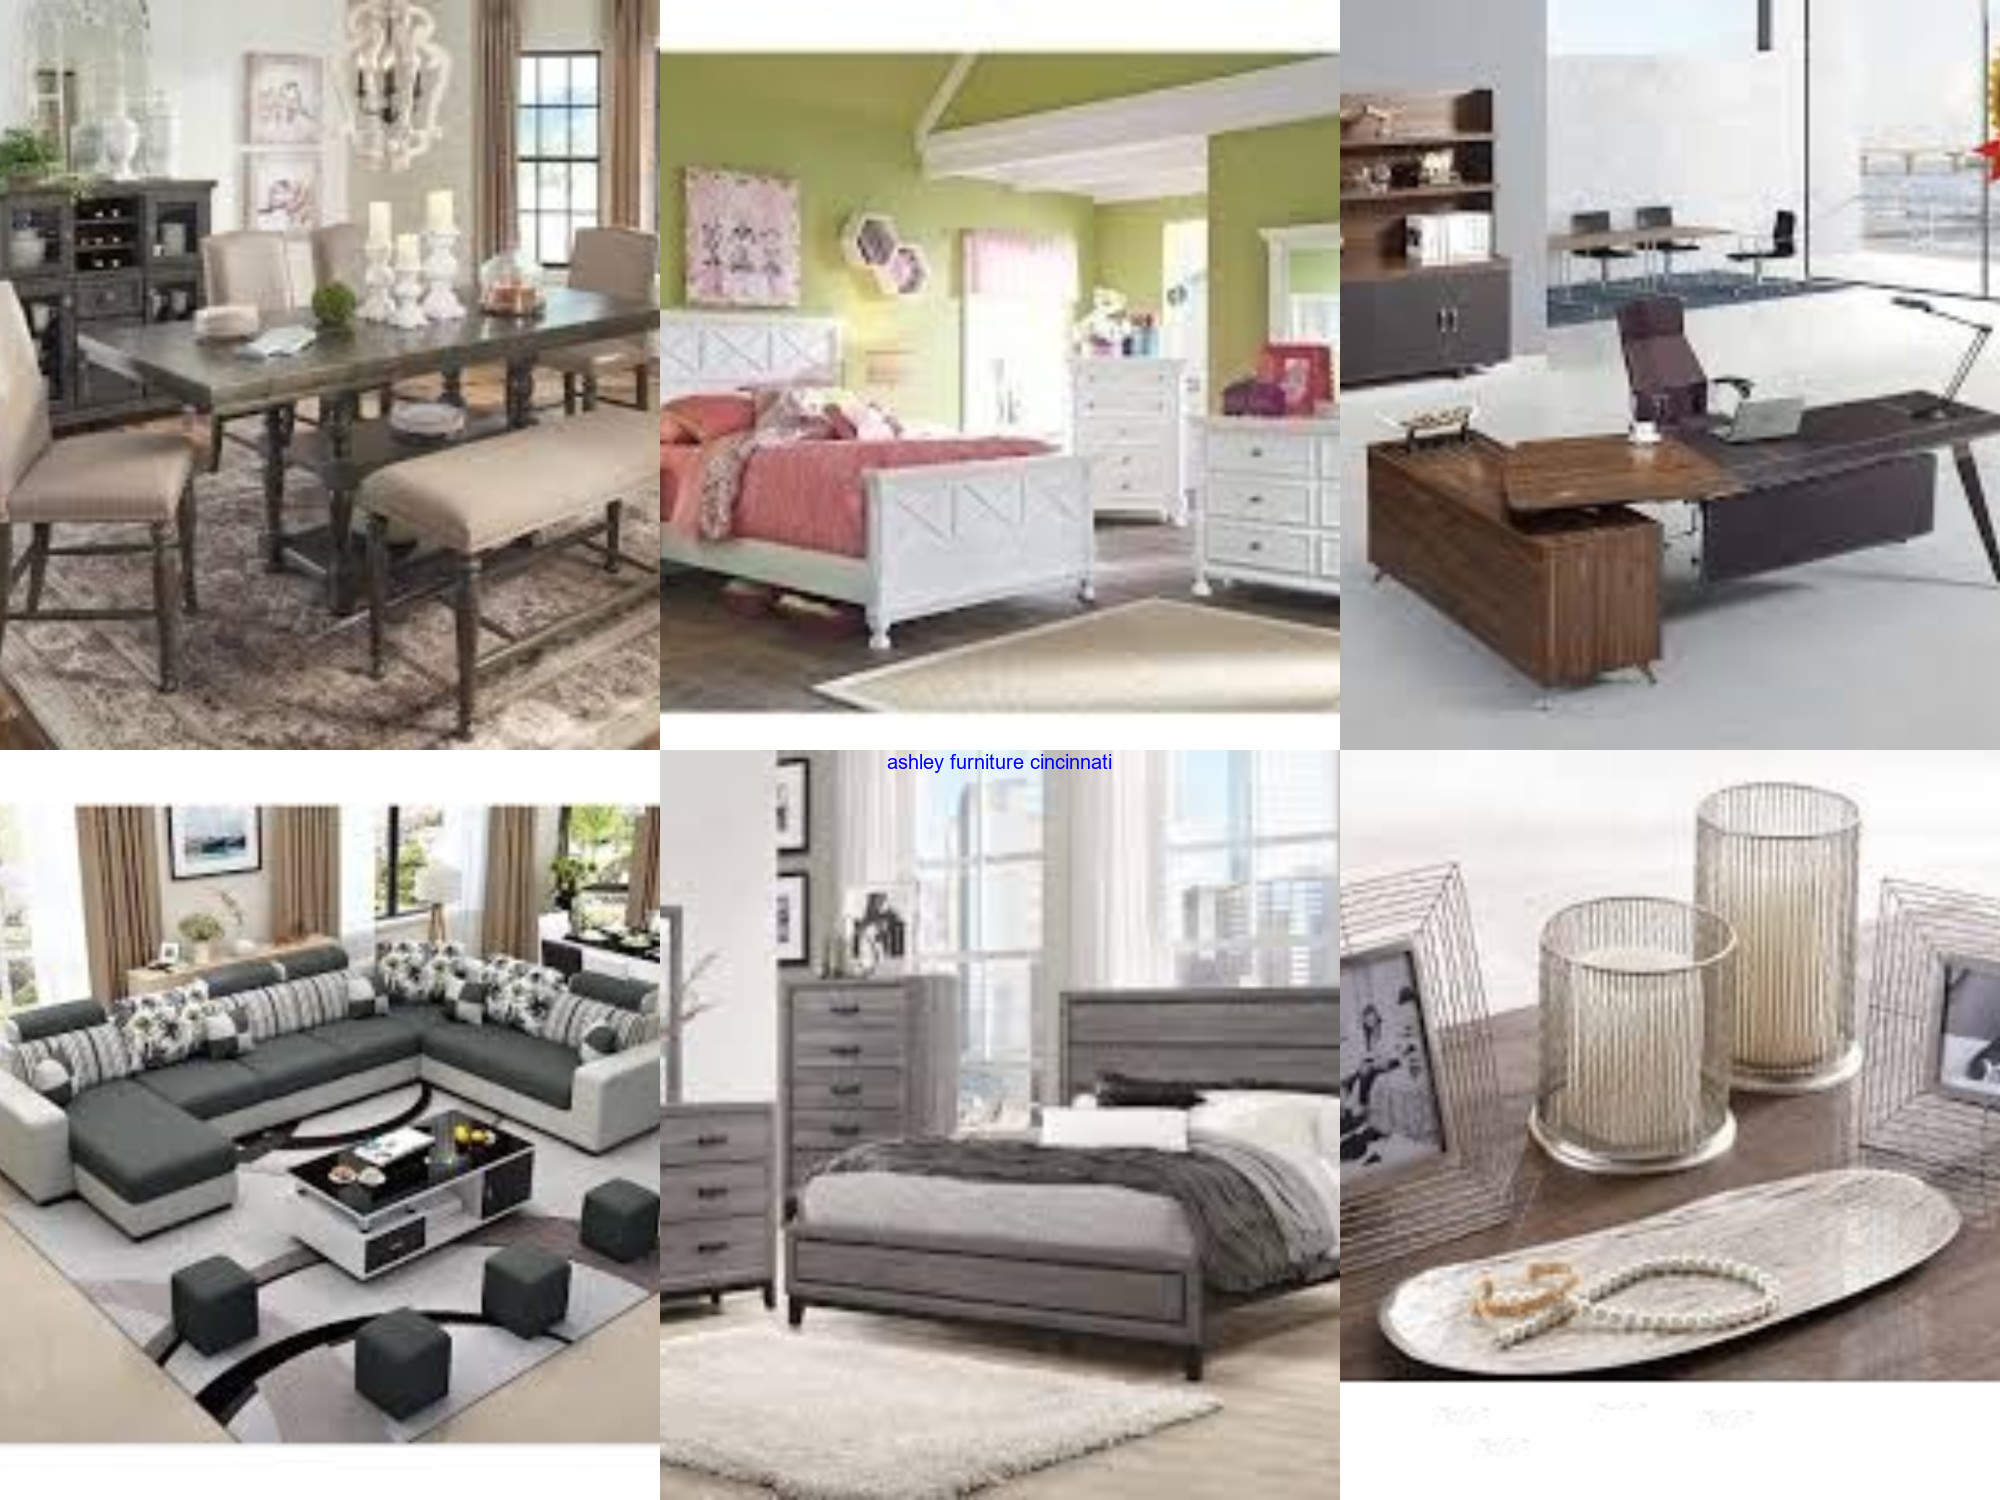 Ashley Furniture Cincinnati I Might Suggest That You Visit This Website Where You Can Find D In 2020 With Images Value City Furniture Parker House Wholesale Furniture